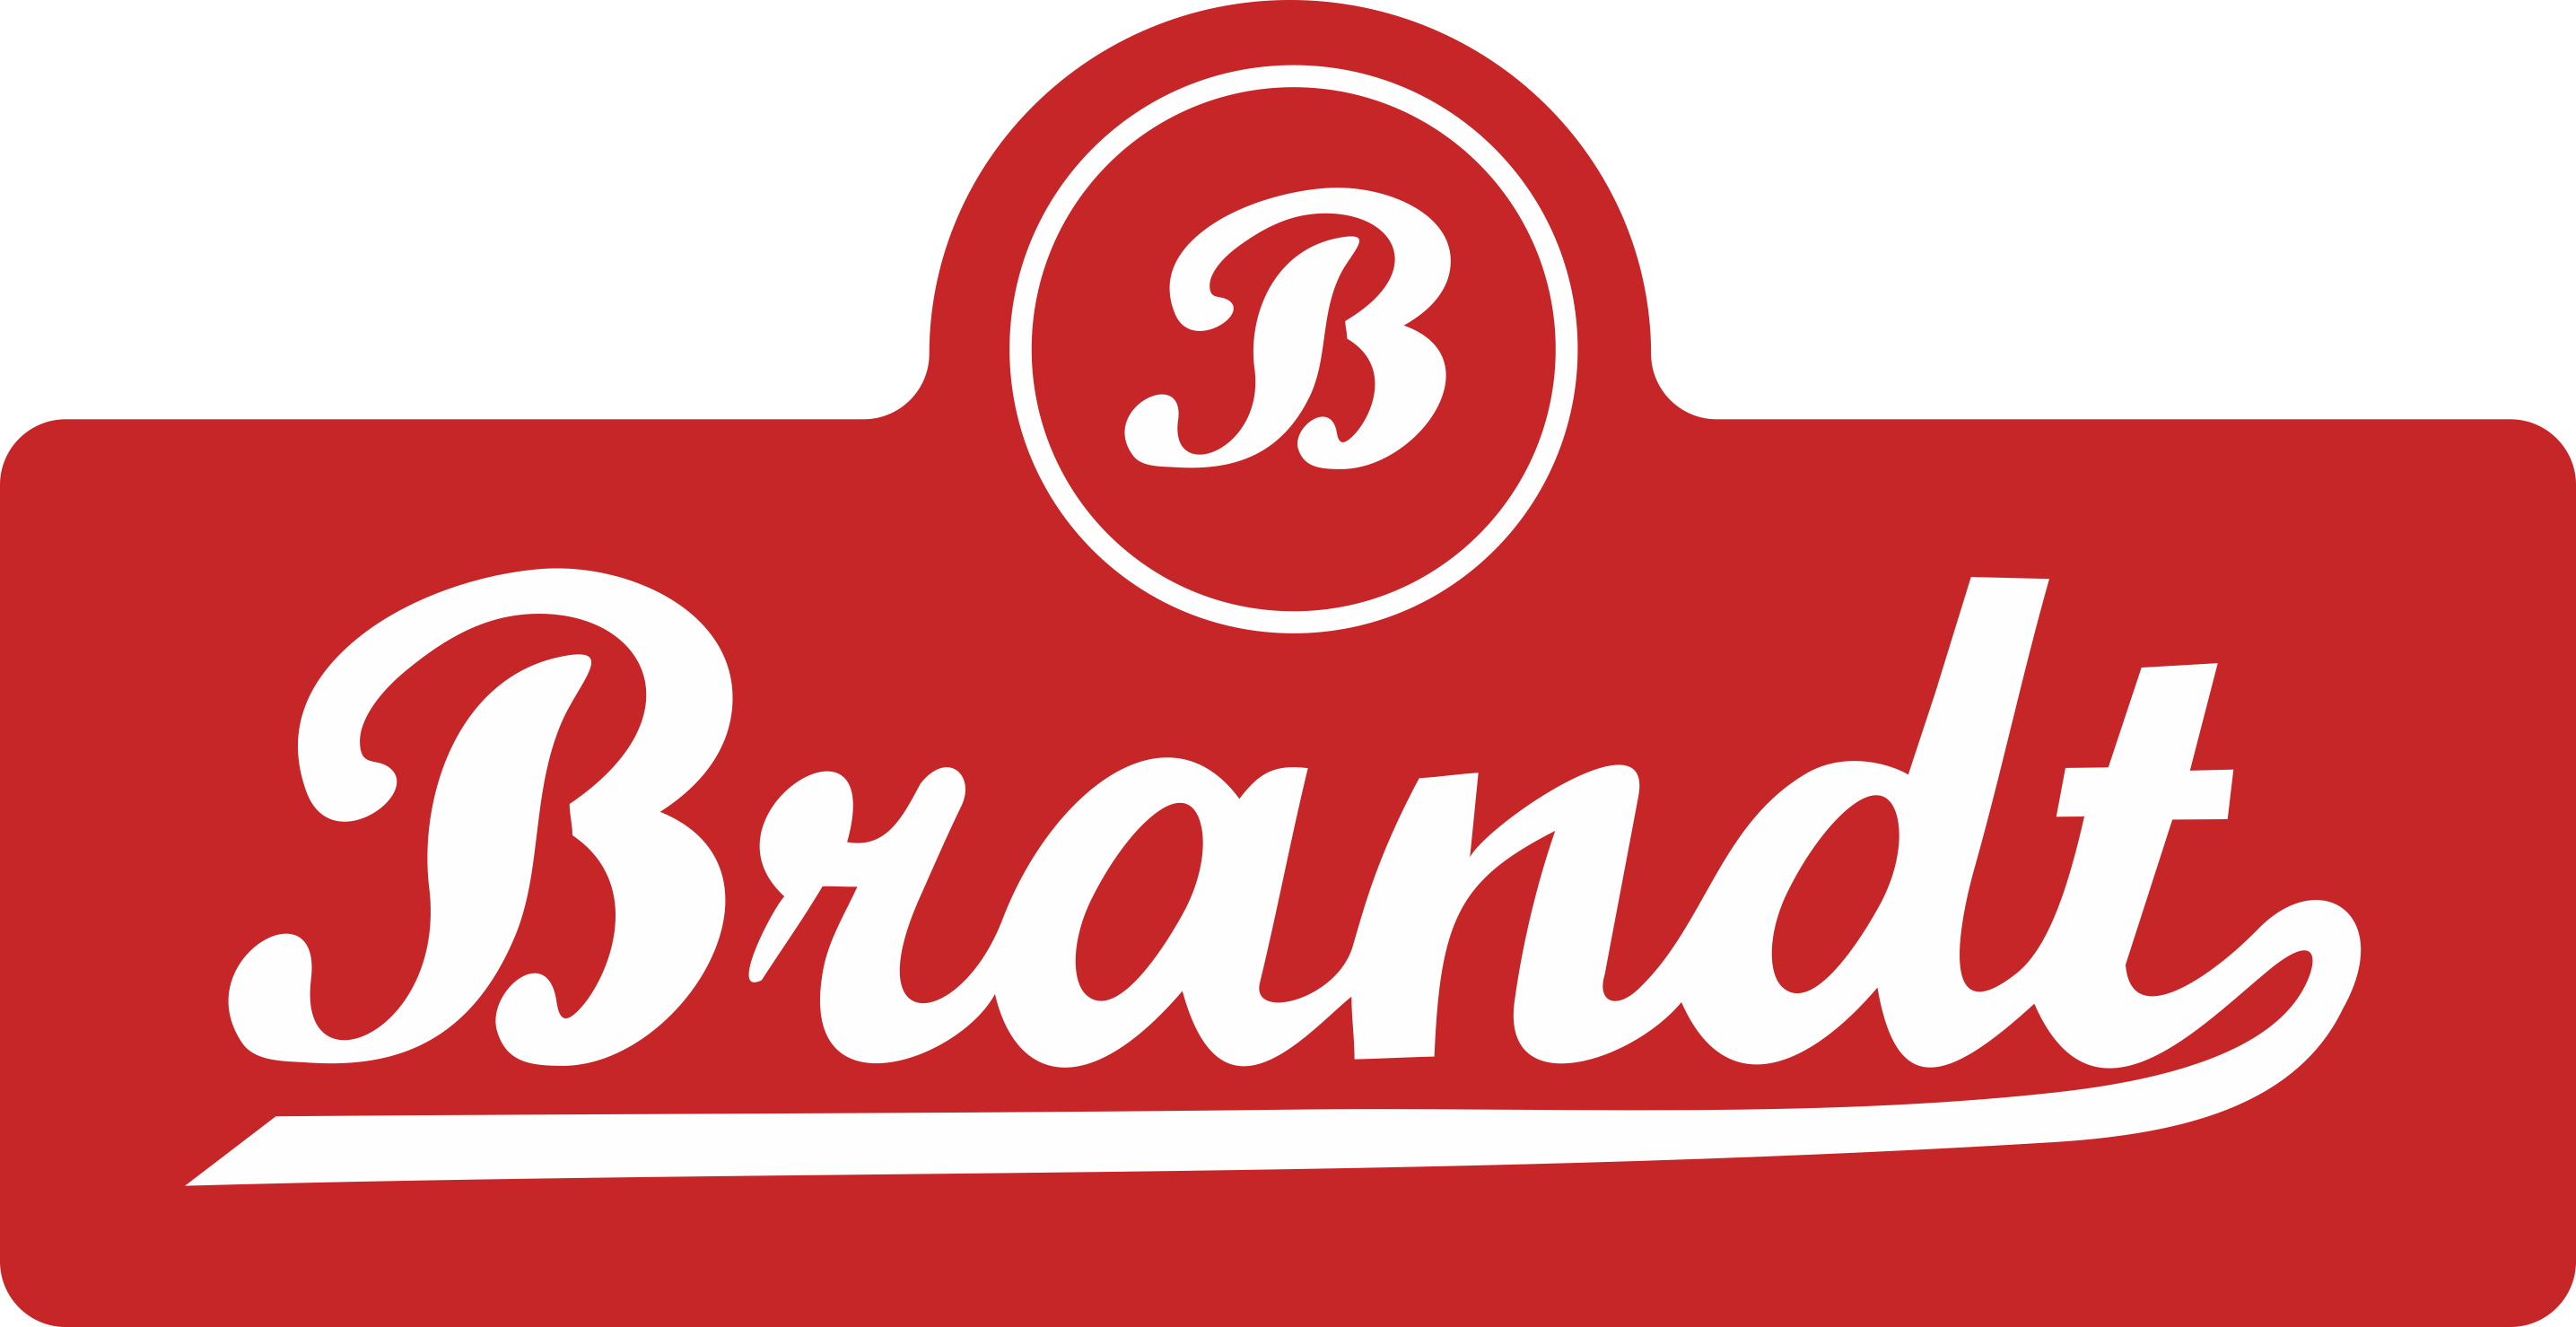 Chocolates Brandt - Uma empresa familiar e Joinvillense.